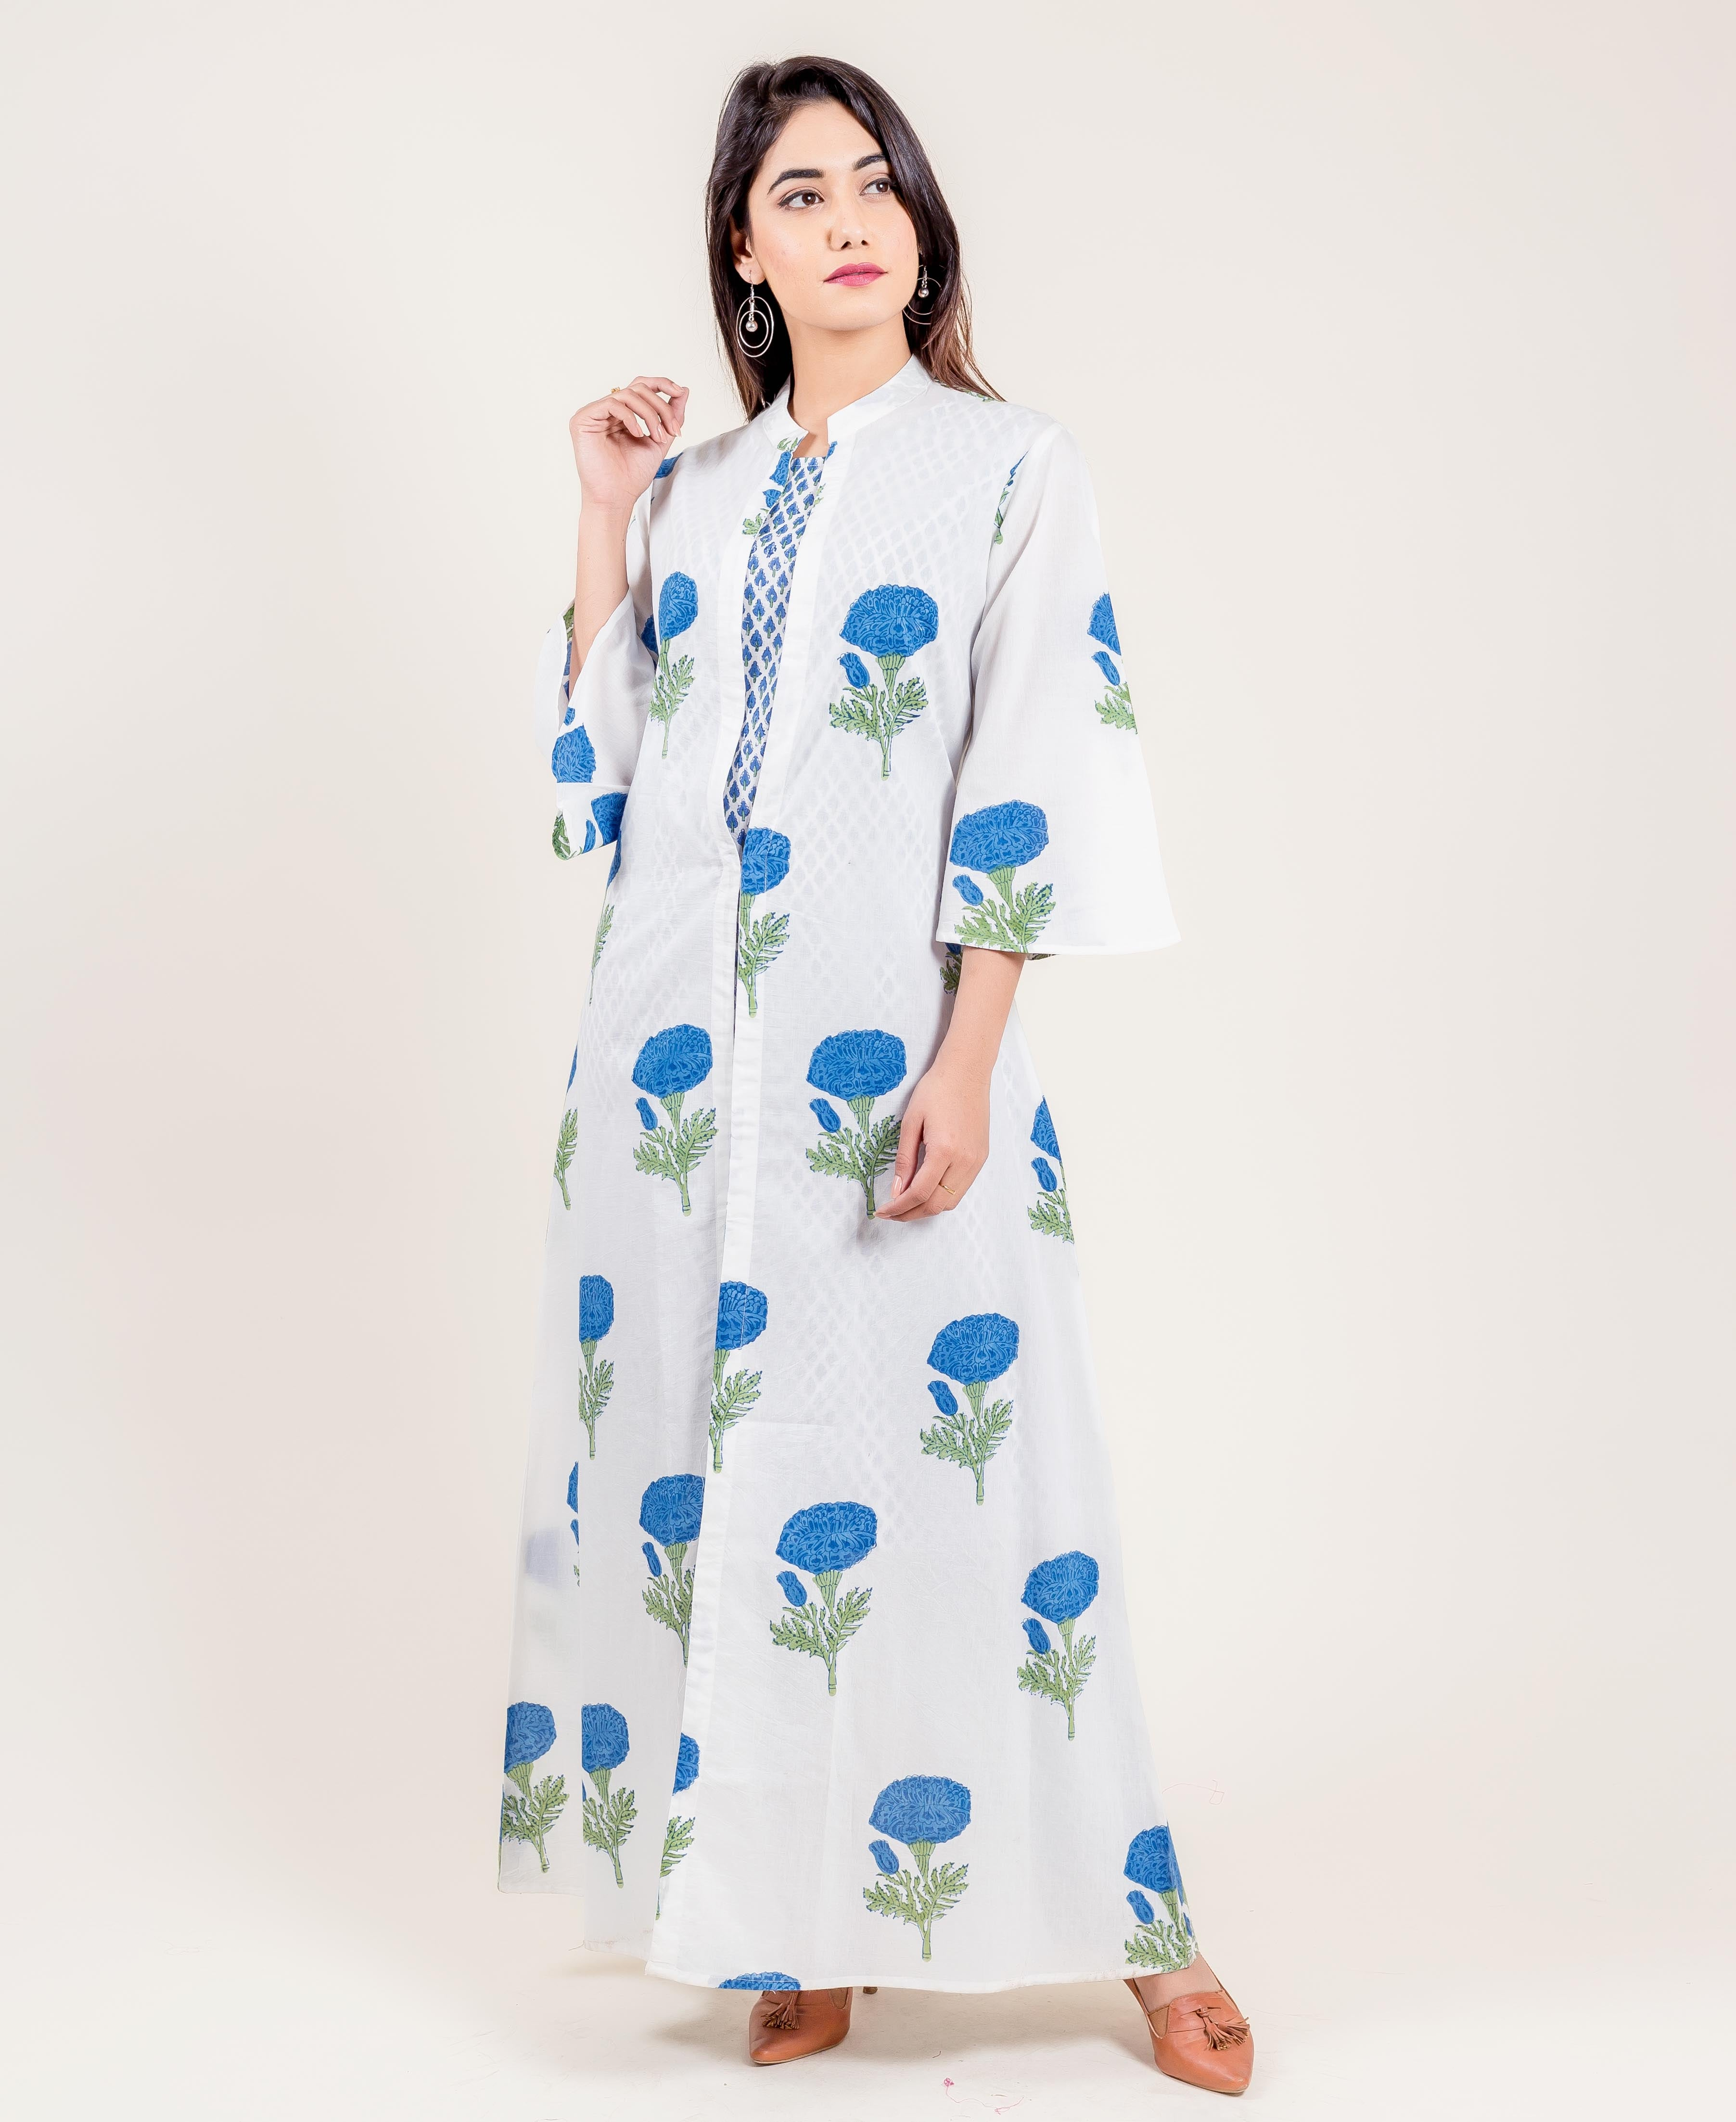 Layered Hand Block Printed White And Blue Cotton Suit Set